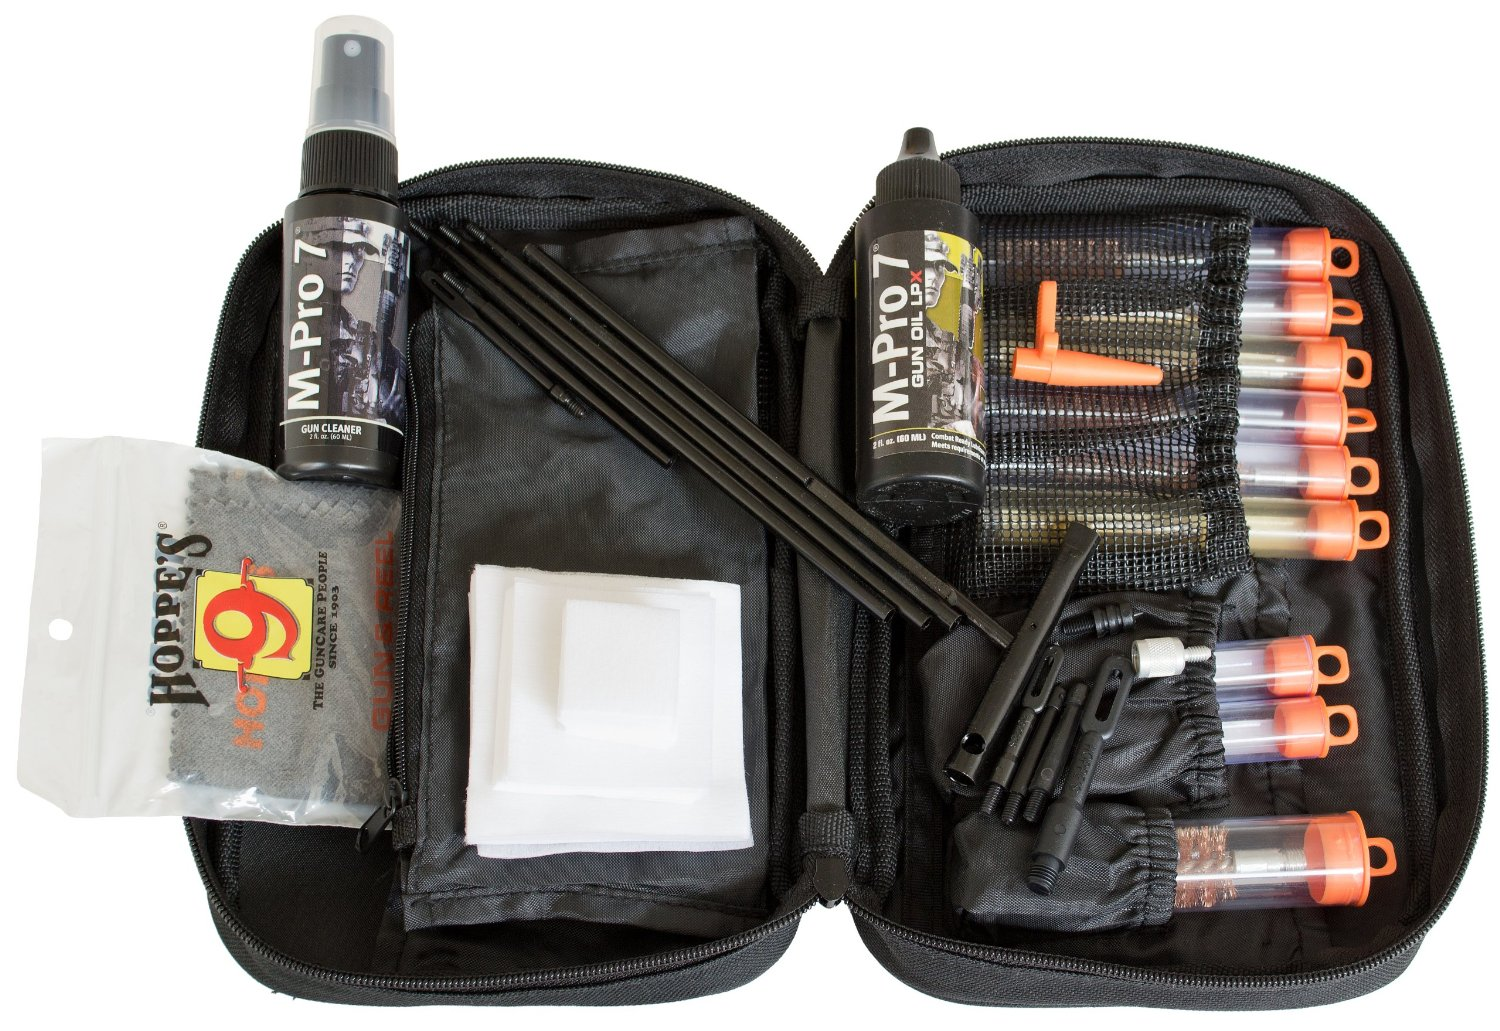 M-Pro 7 Gun Cleaning Kit